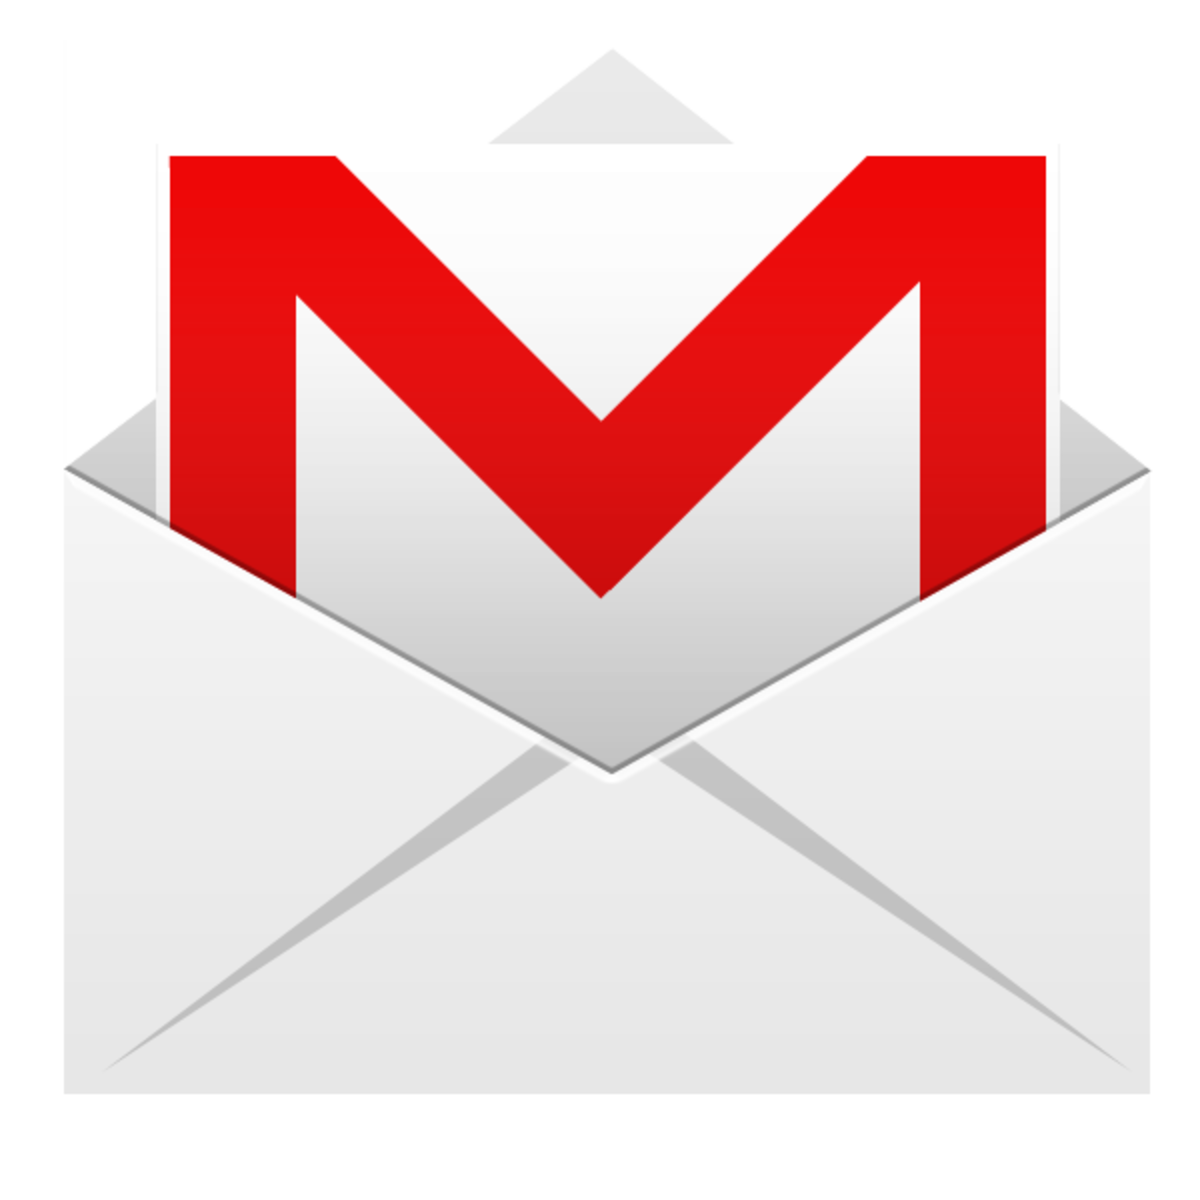 The industry standard email service also has an app that can help you out.